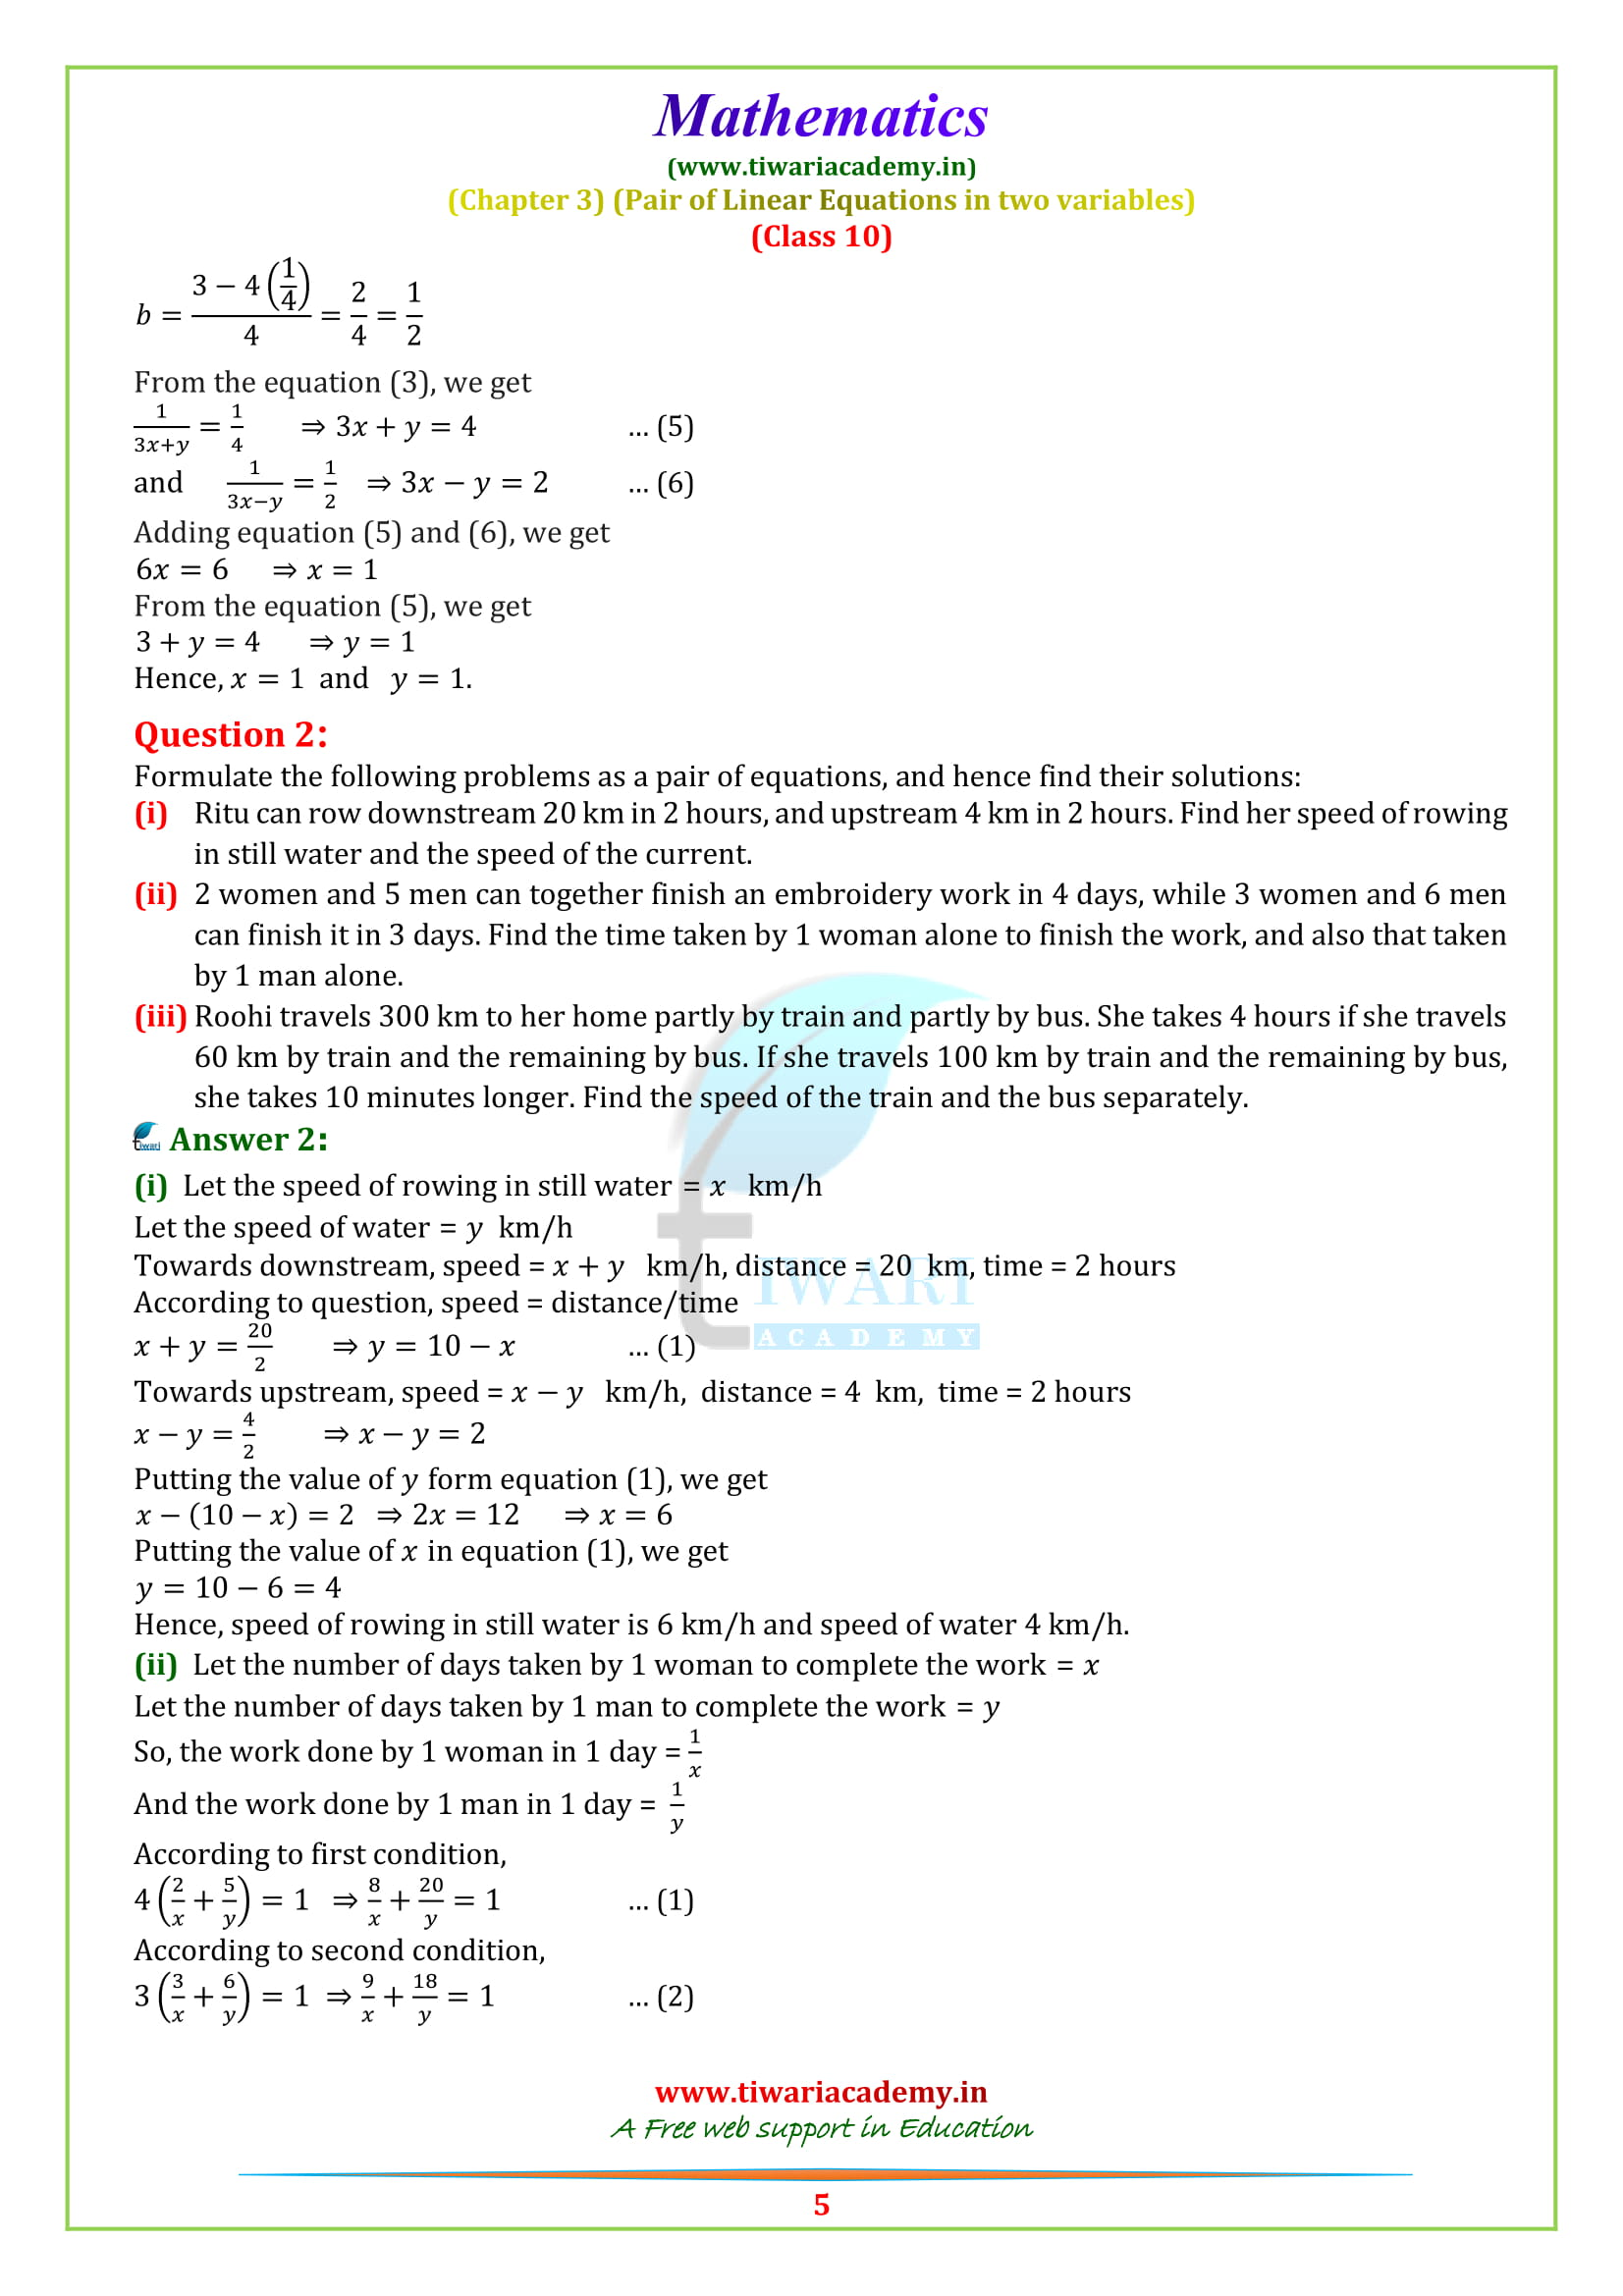 ncert sols exercise 3.6 of class x